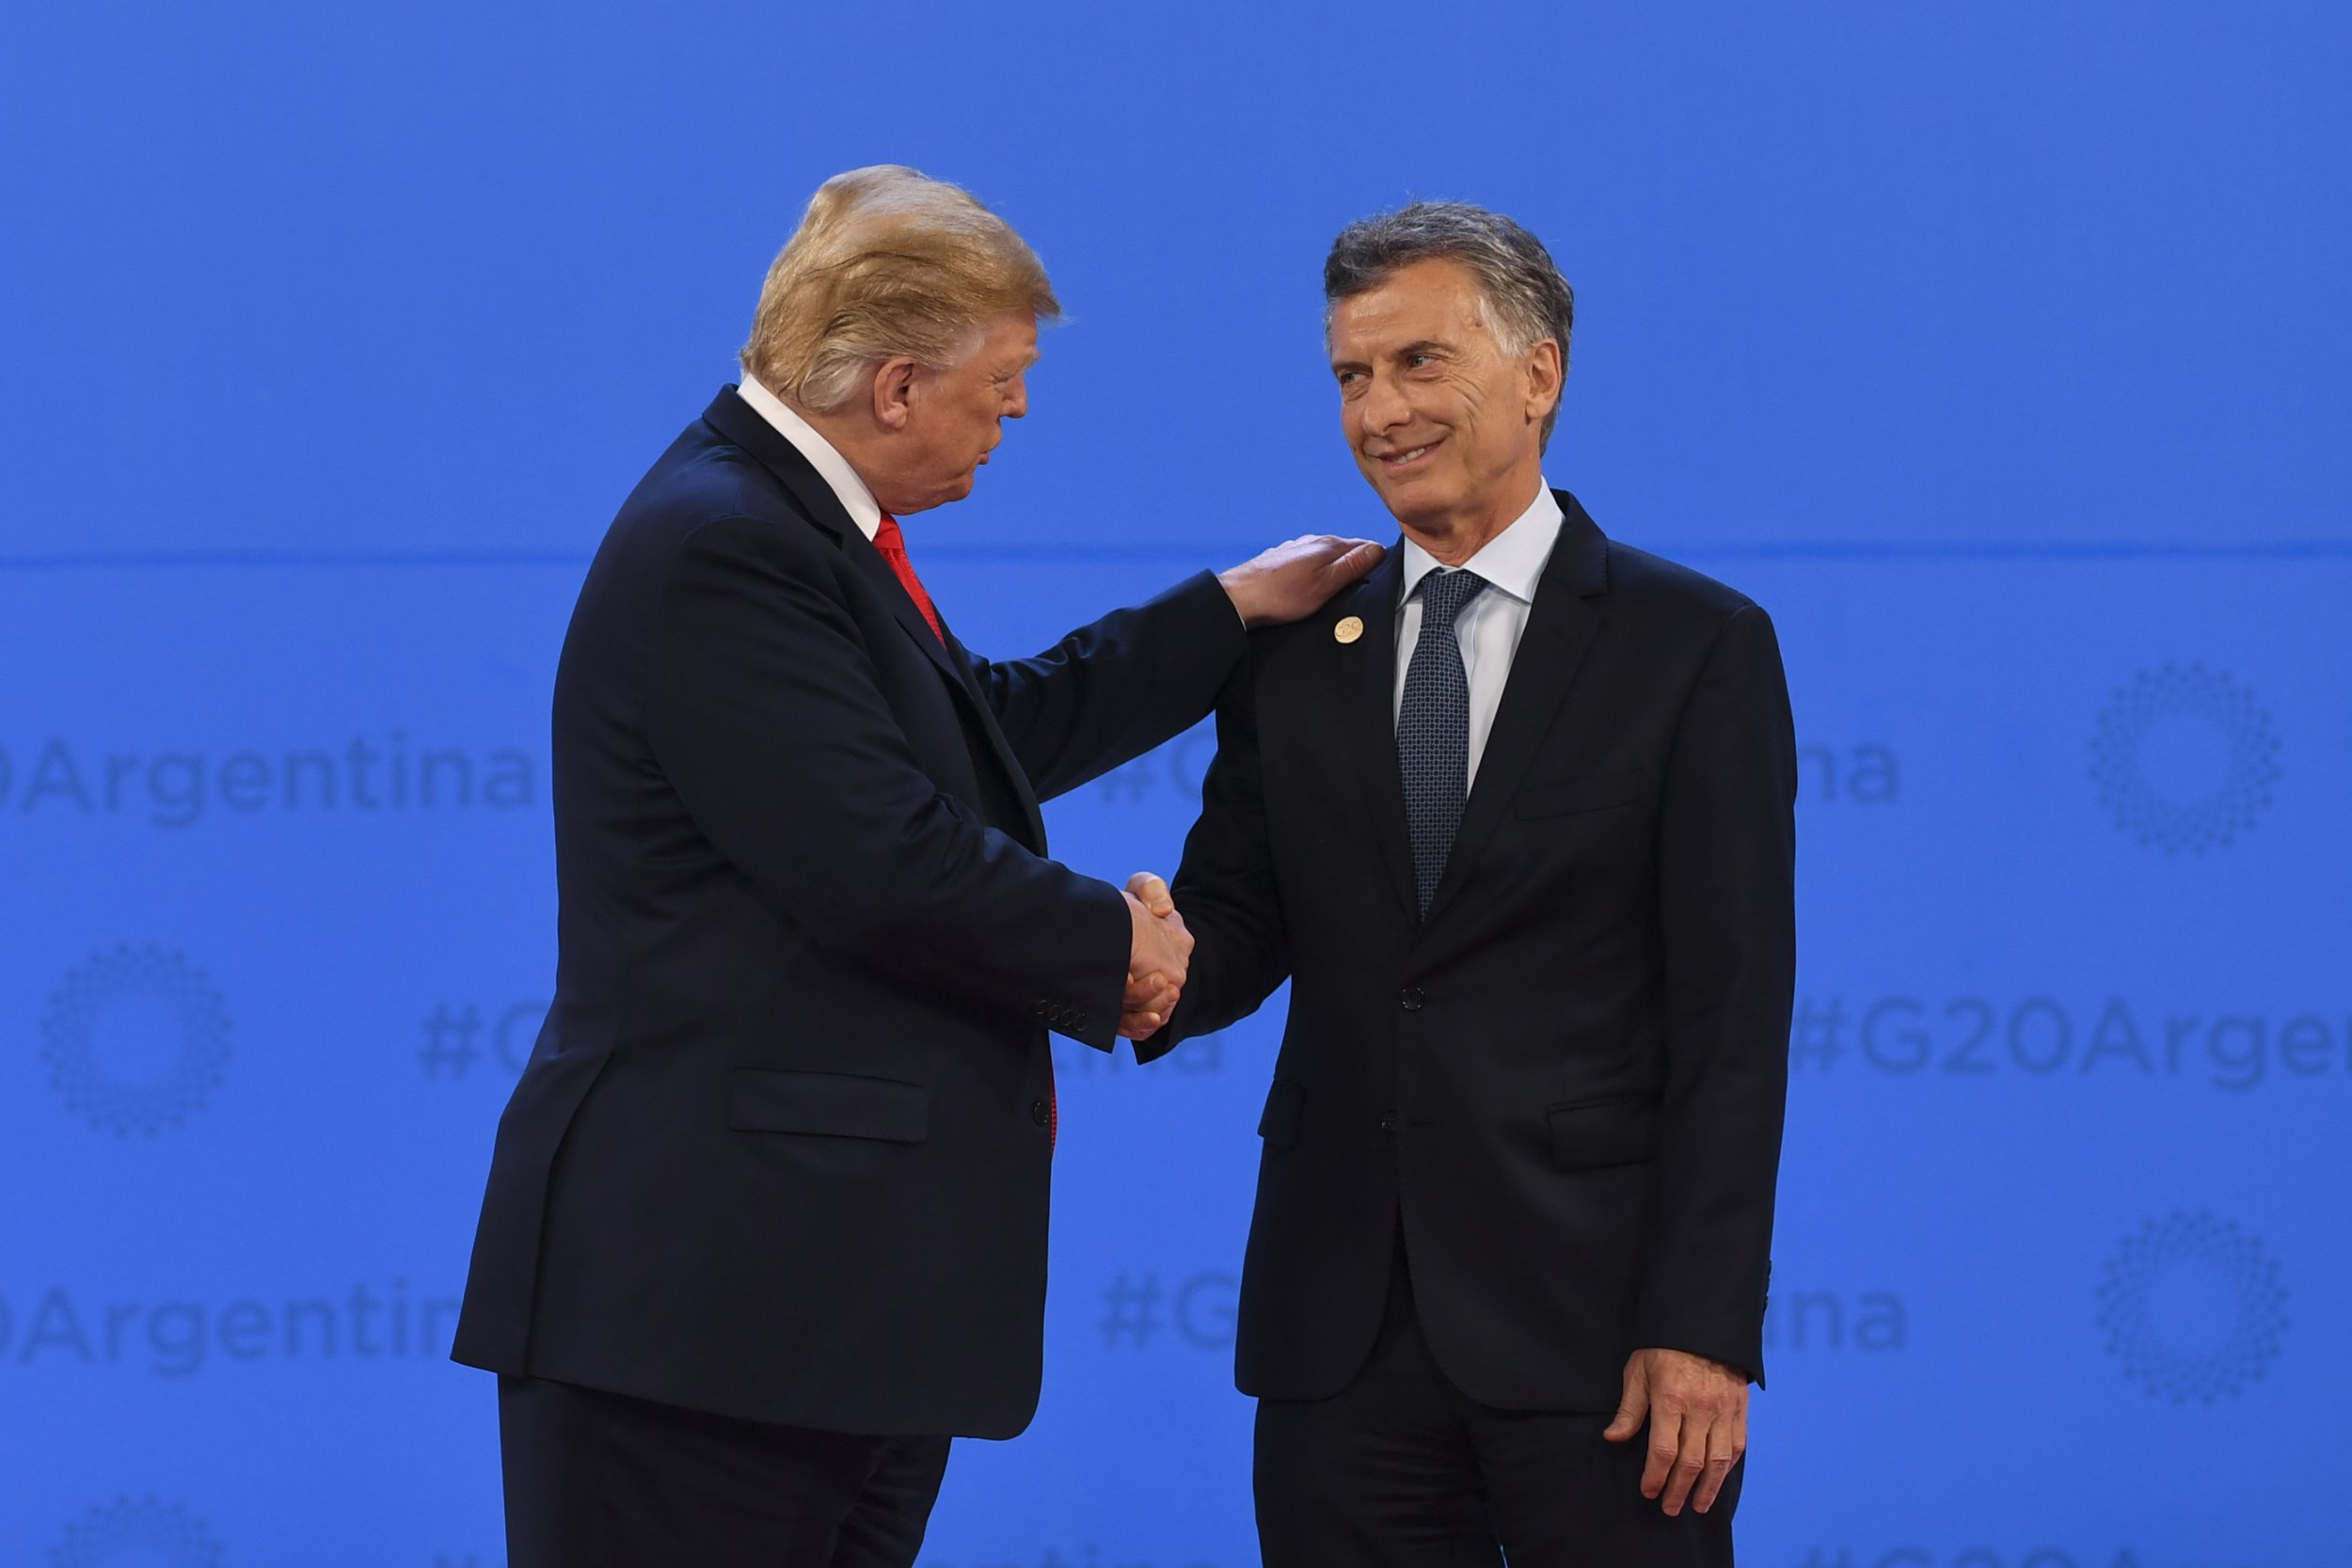 epa07200281 US President Donald Trump (left) is welcomed by the President of Argentina Mauricio Macri at the G20 summit in Buenos Aires, Argentina, 30 November 2018. The Group of Twenty (G20) Summit brings together the heads of State or Government of the 20 largest economies and takes place from 30 November to 01 December 2018. EPA/LUKAS COCH AUSTRALIA AND NEW ZEALAND OUT